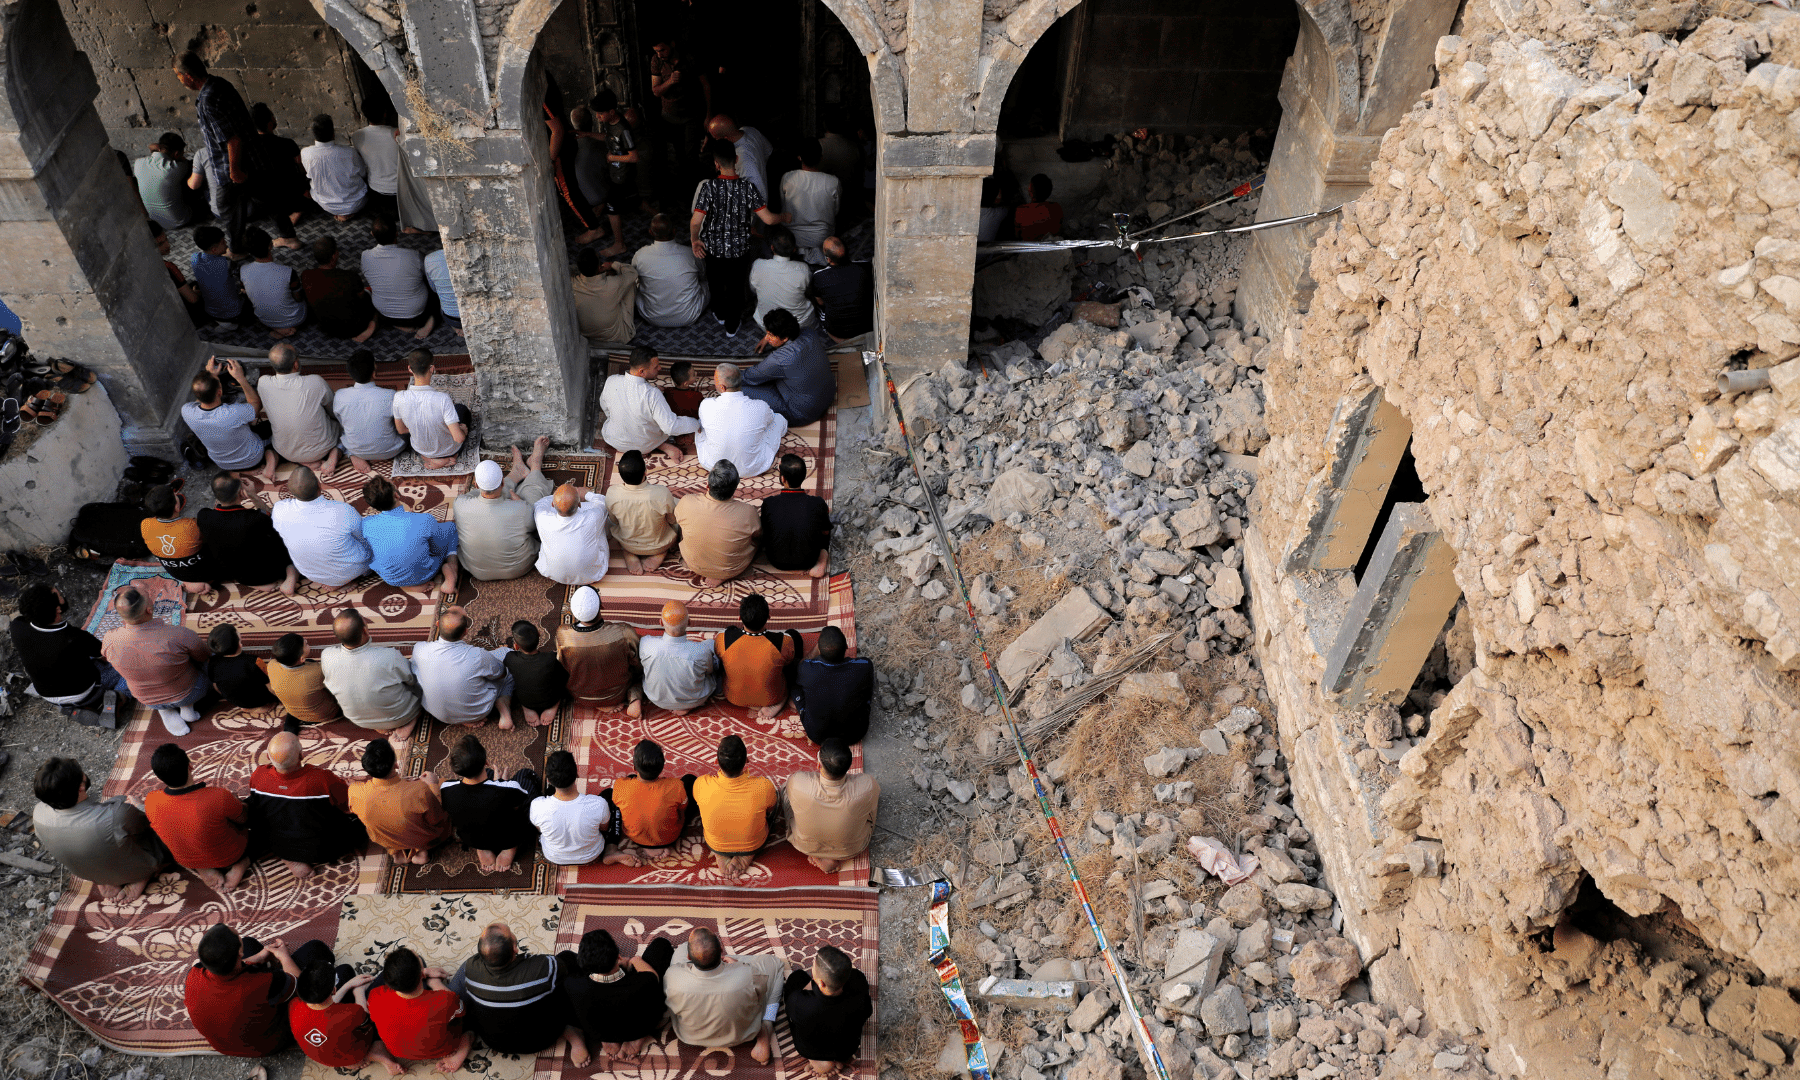 People attend Eidul Fitr prayer marking the end of the holy fasting month of Ramazan, at the oldest Al-Masfi mosque, which was damaged during the war against Islamic State militants in Mosul, Iraq. — Reuters